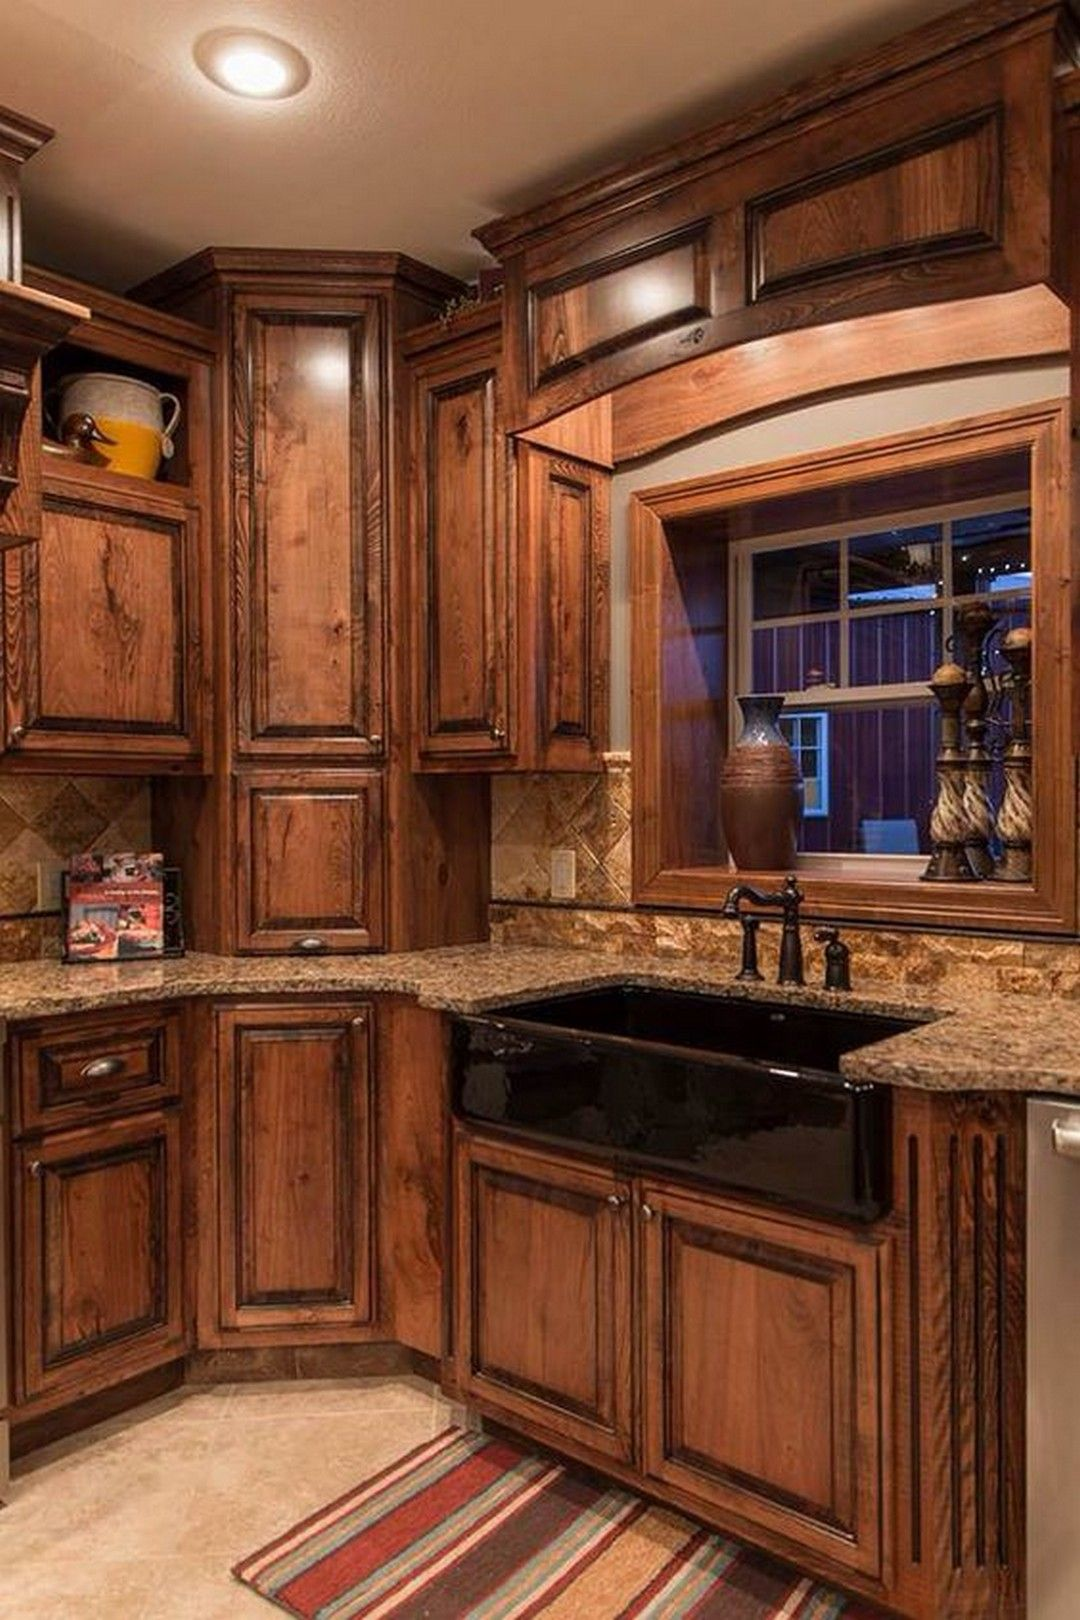 Renew your Ordinary Kitchen with These Inspiring Rustic Country ...